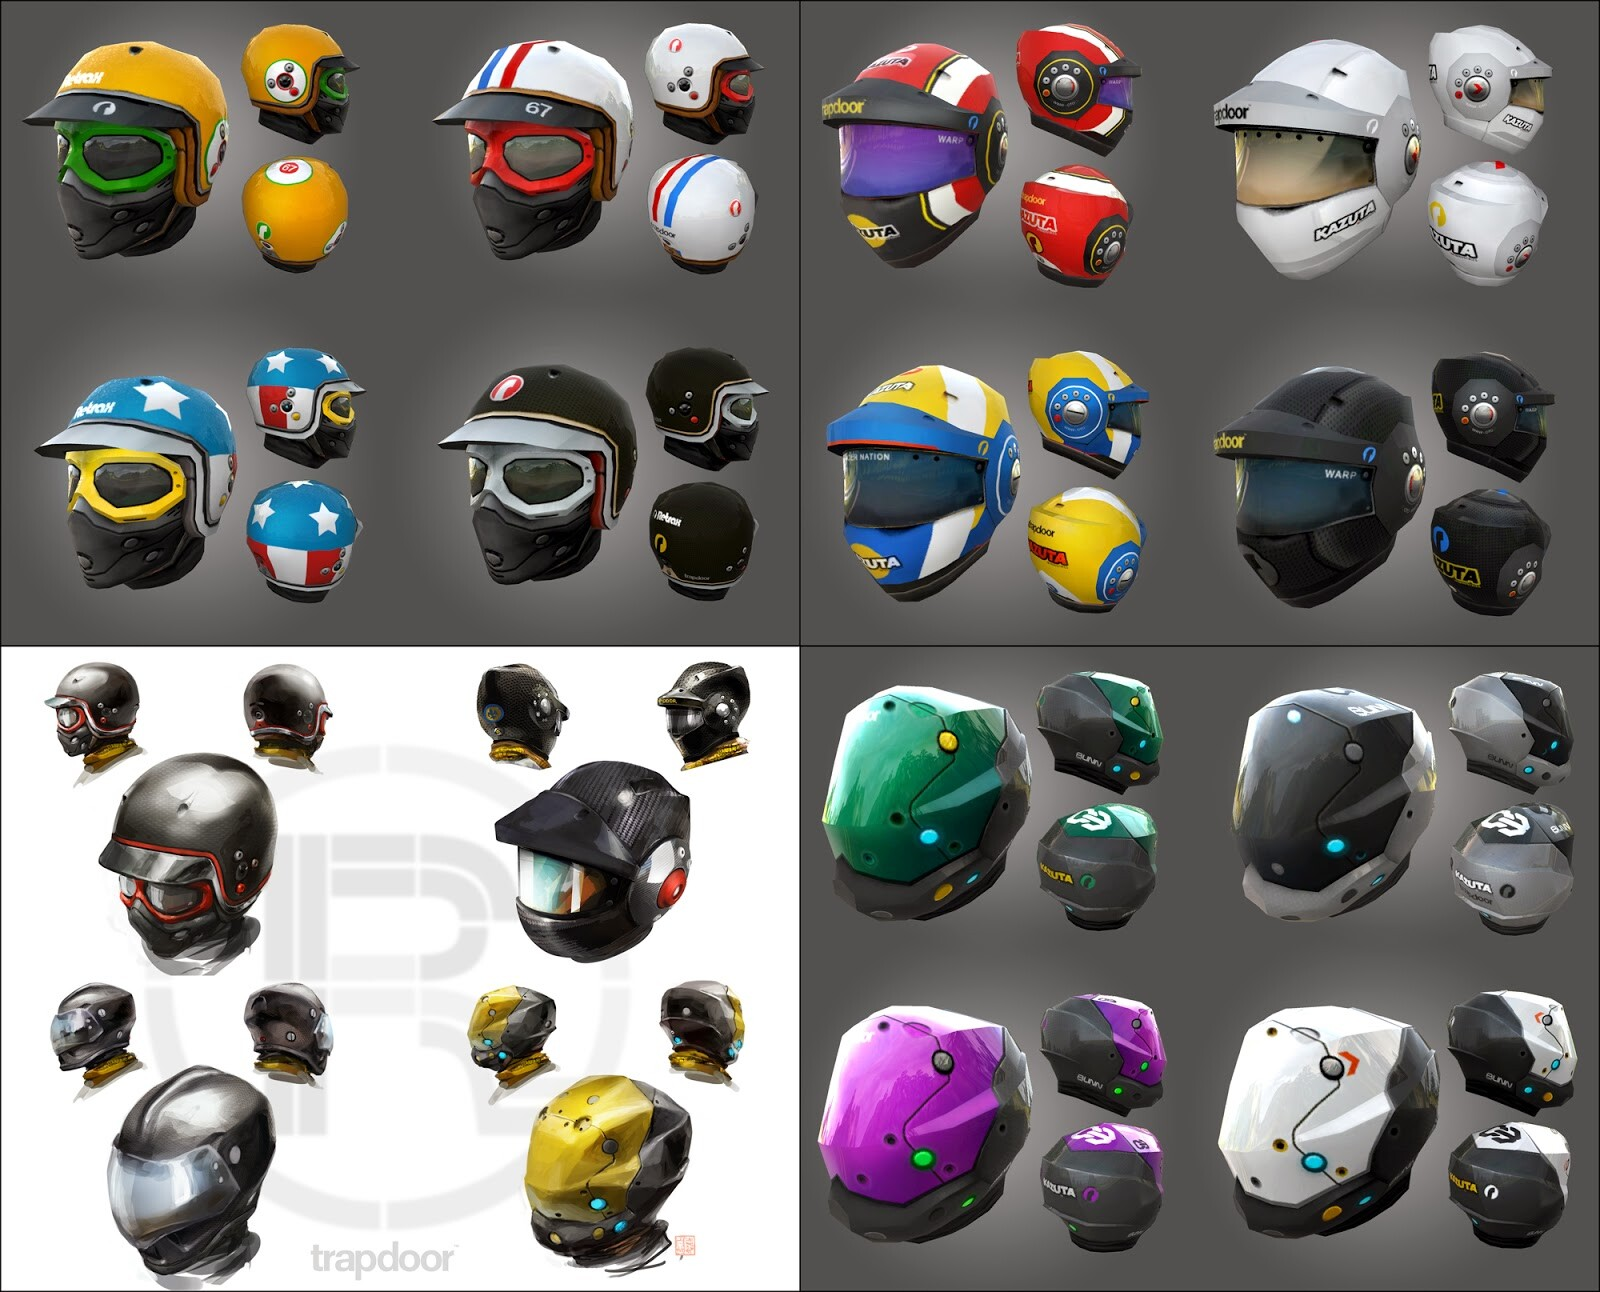 Concept art and textures I have done for some of the helmets...